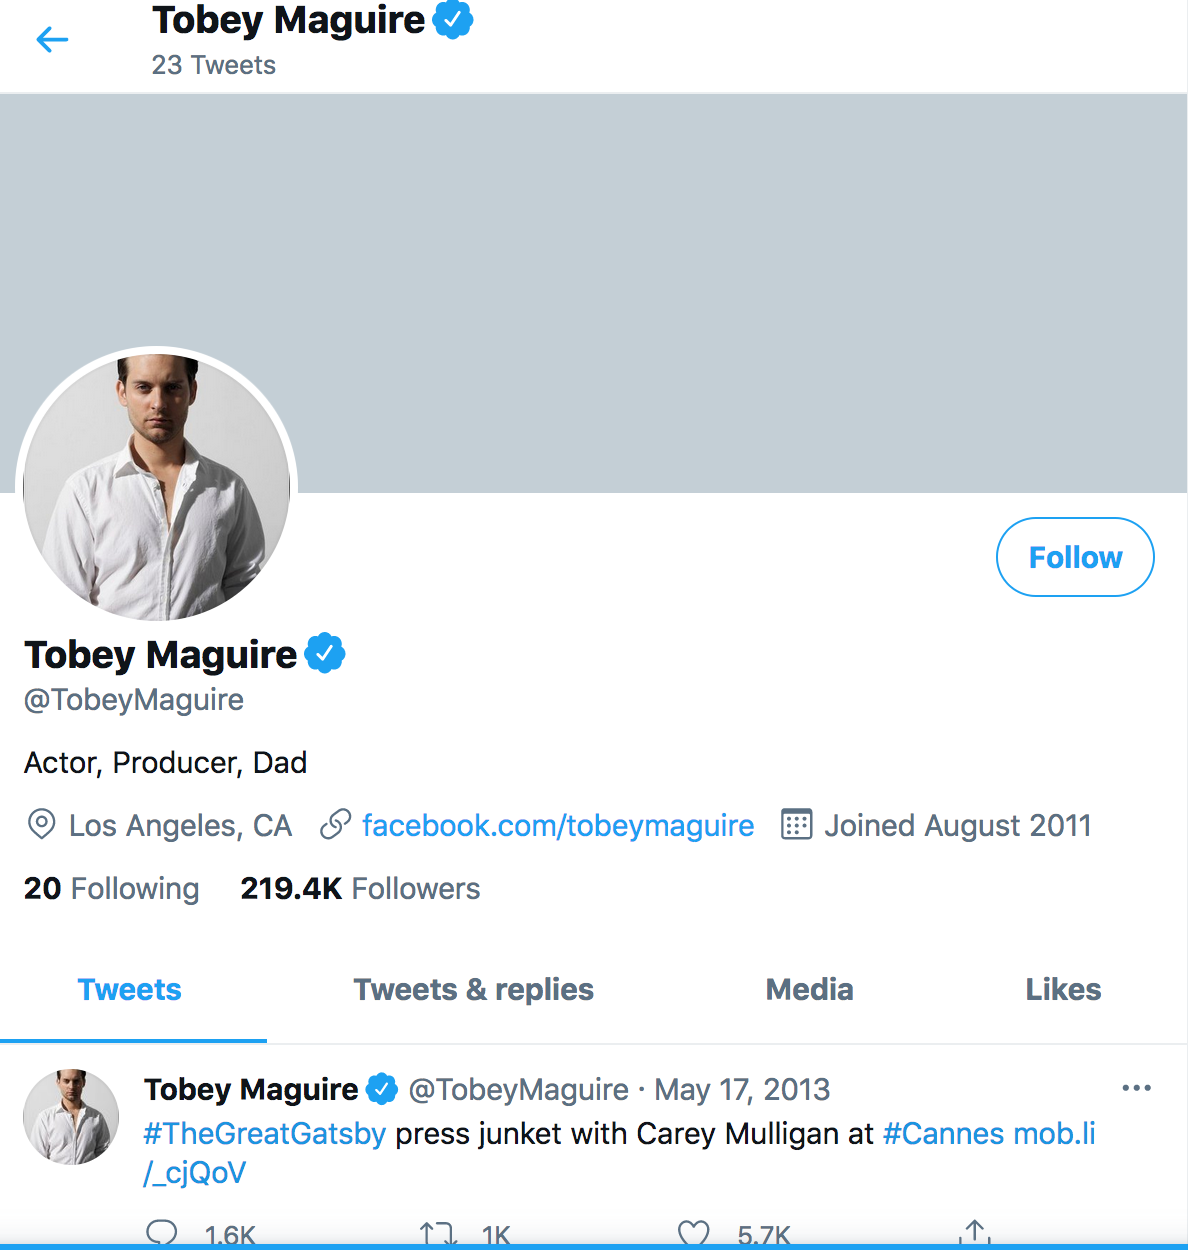 Tobery Maguire Returns to Twitter